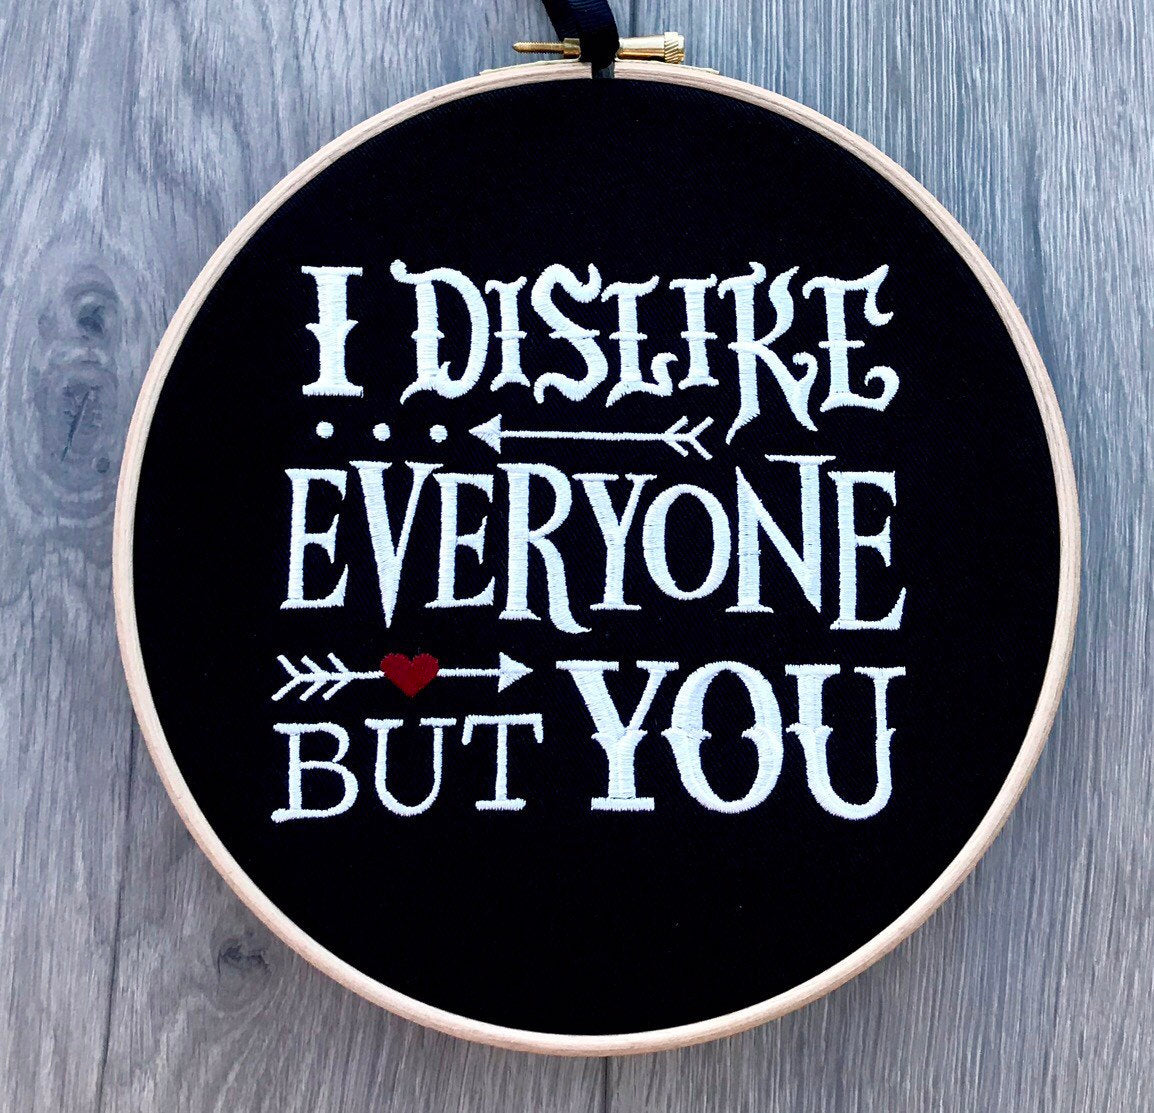 I dislike everyone but you, Embroidery hoop art